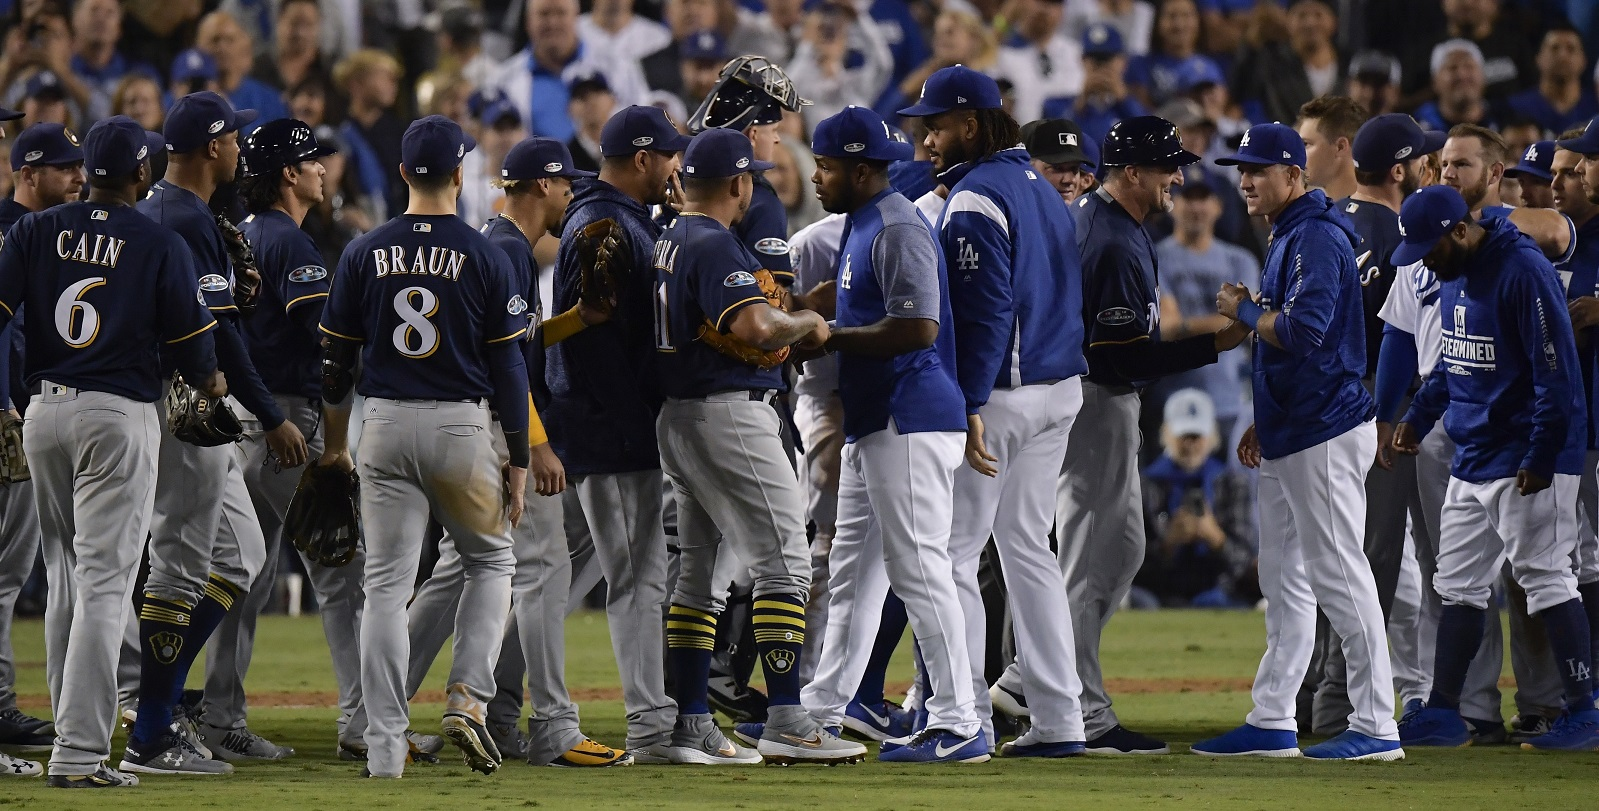 NLCS REMATCH: Brewers face off with Dodgers on WKTY